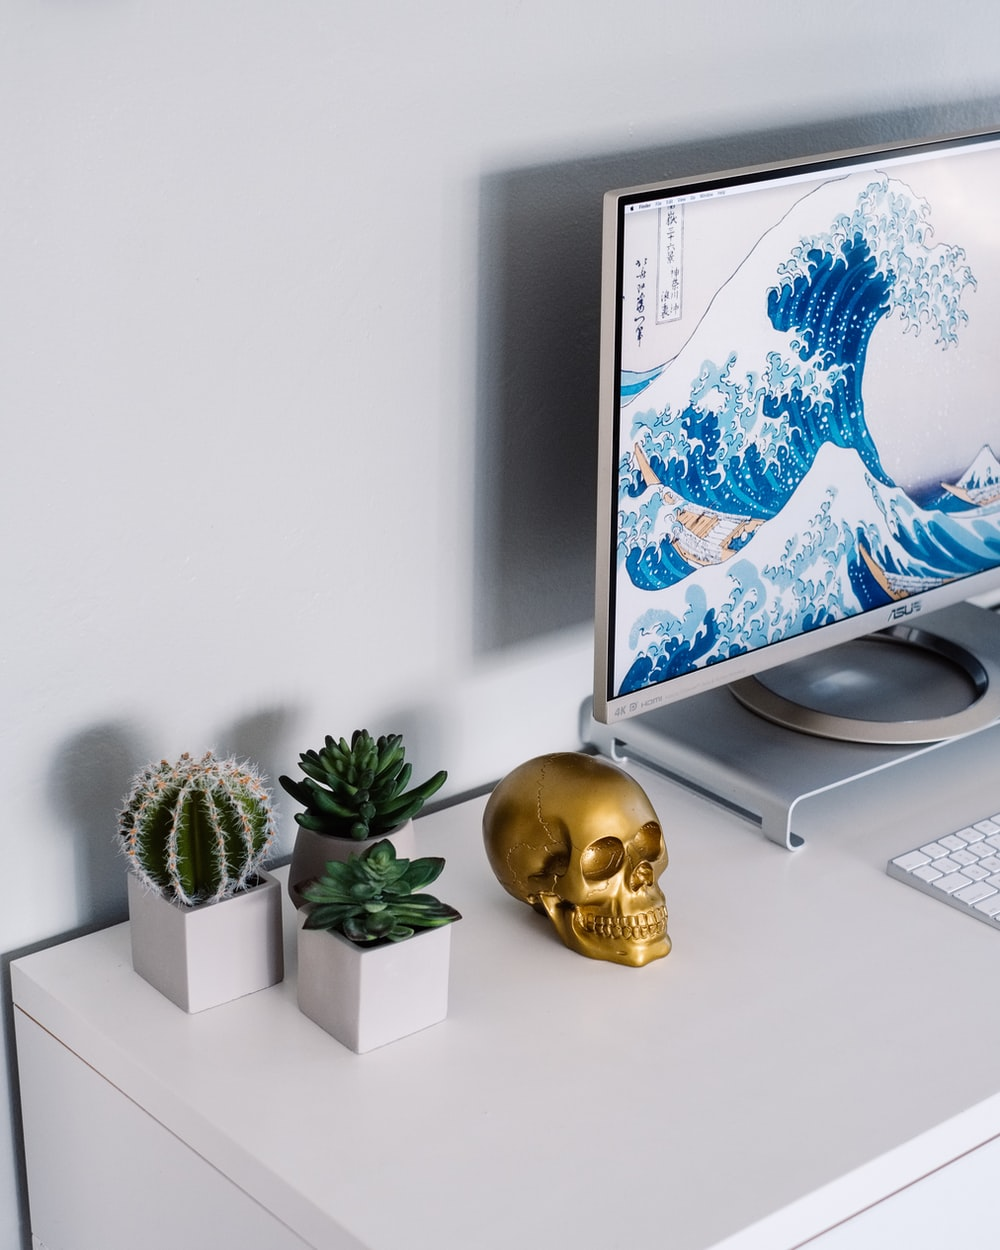 gray flat screen computer monitor beside gold skull ornament